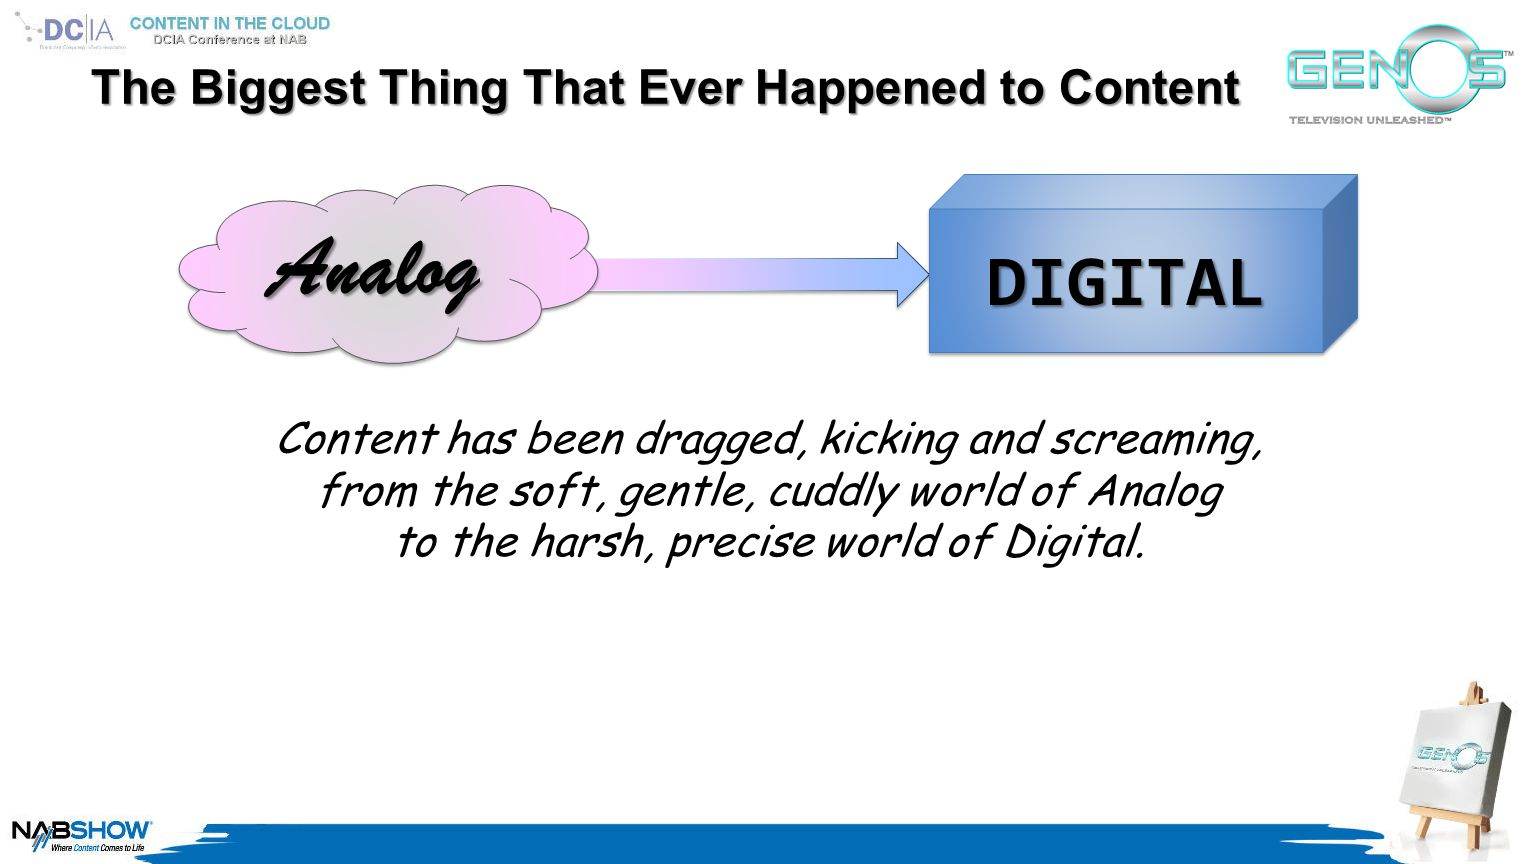 AnalogAnalog DIGITALDIGITAL The Biggest Thing That Ever Happened to Content Content has been dragged, kicking and screaming, from the soft, gentle, cuddly world of Analog to the harsh, precise world of Digital.